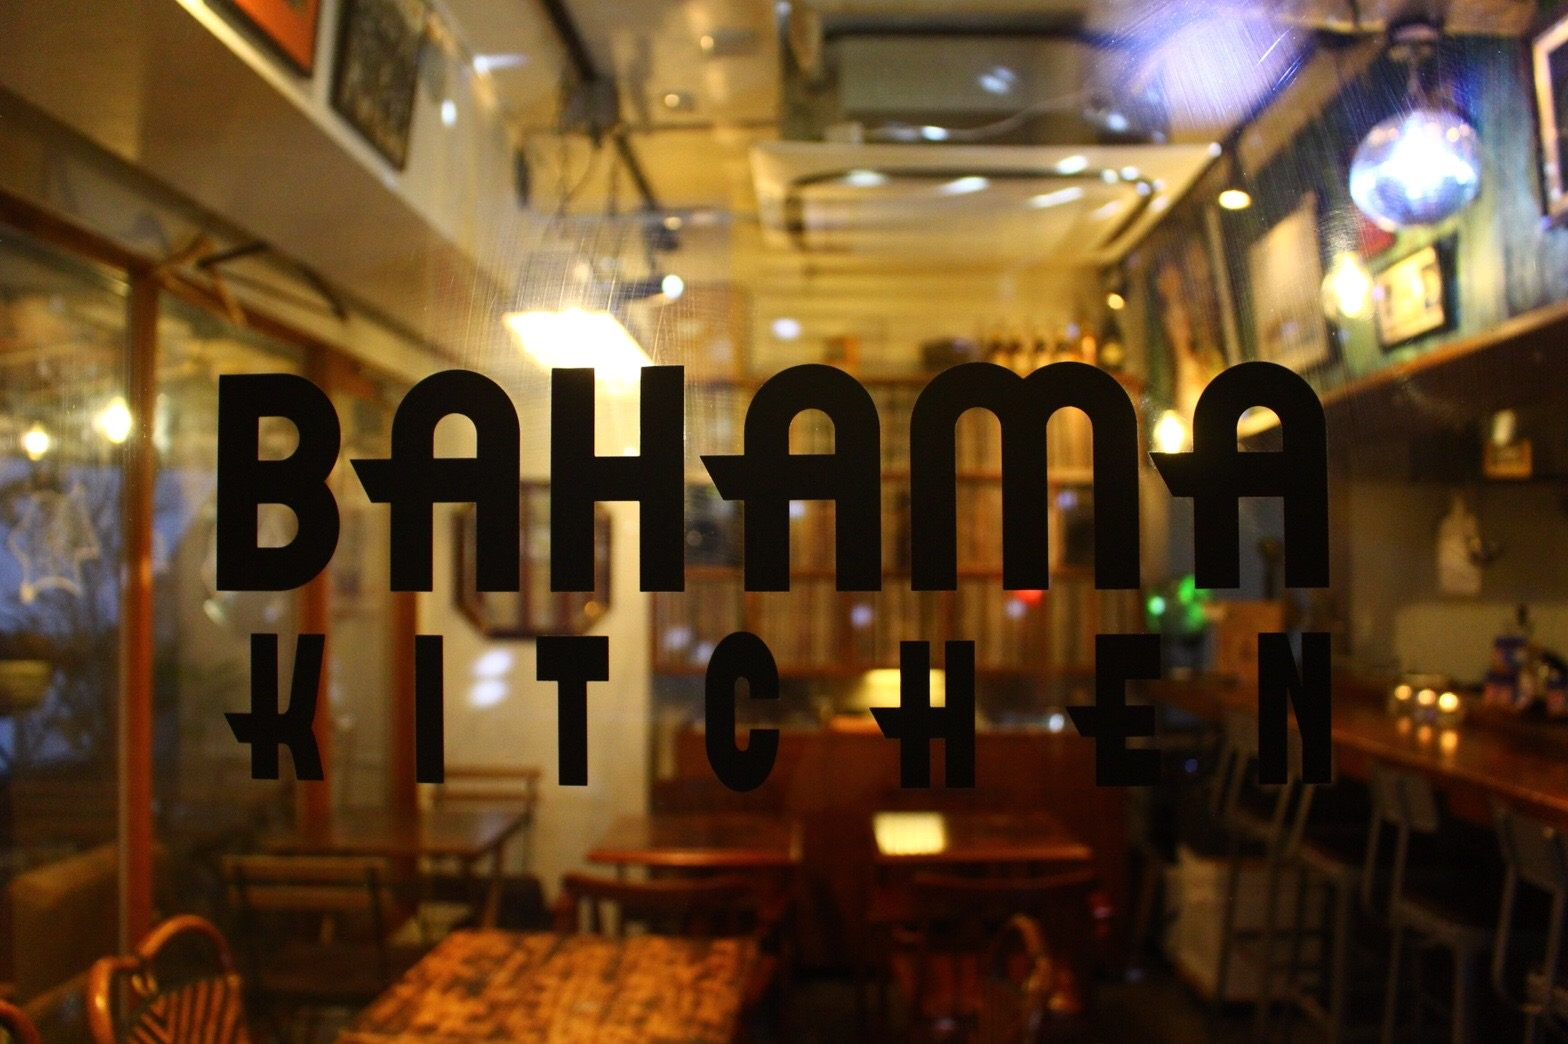 BAHAMA KITCHEN